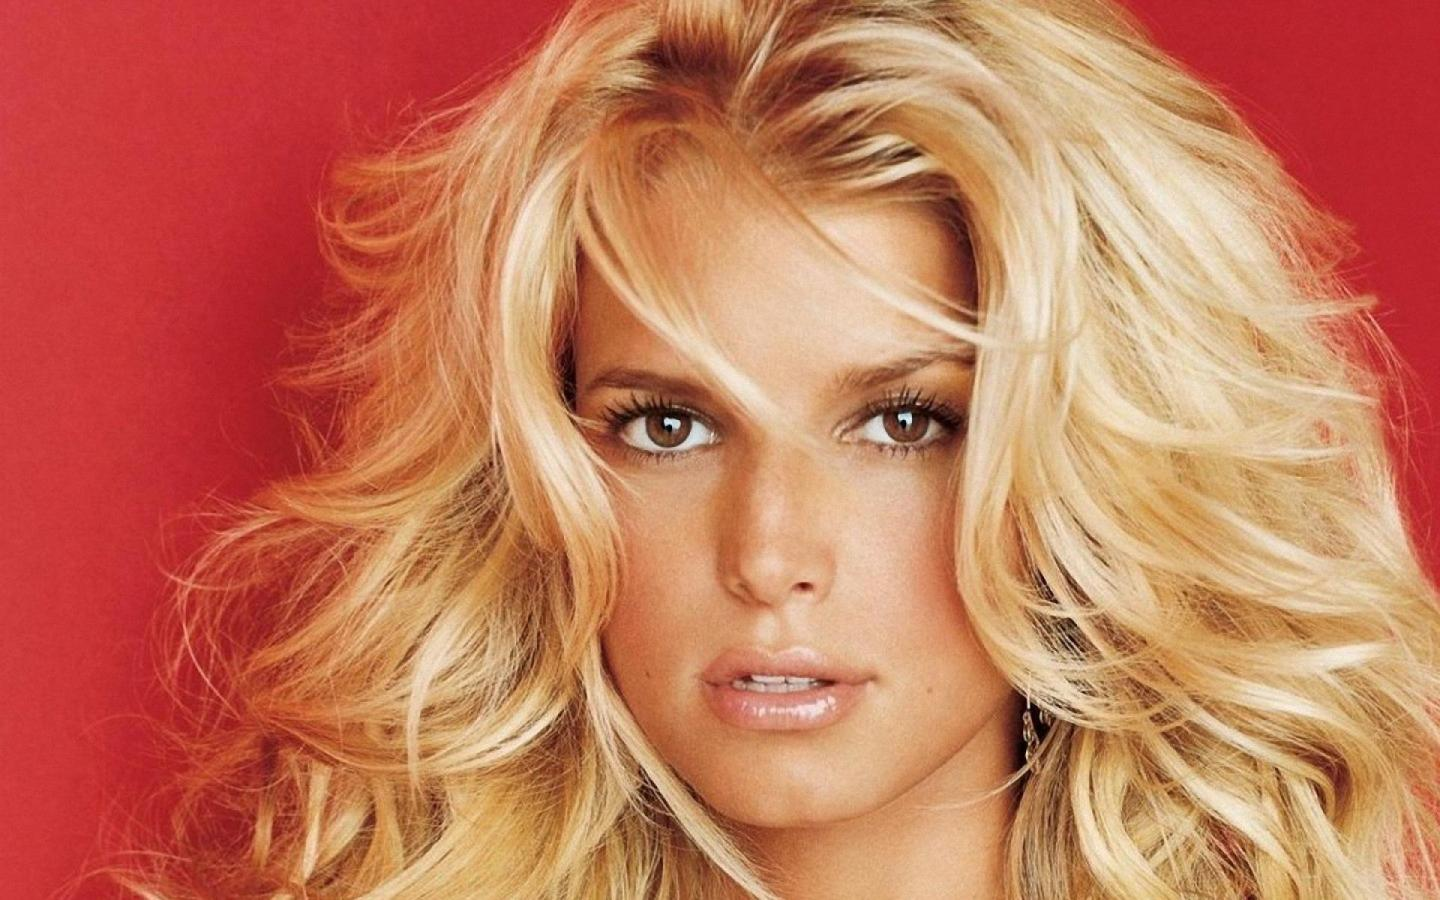 JESSICA SIMPSON in design cbs morining